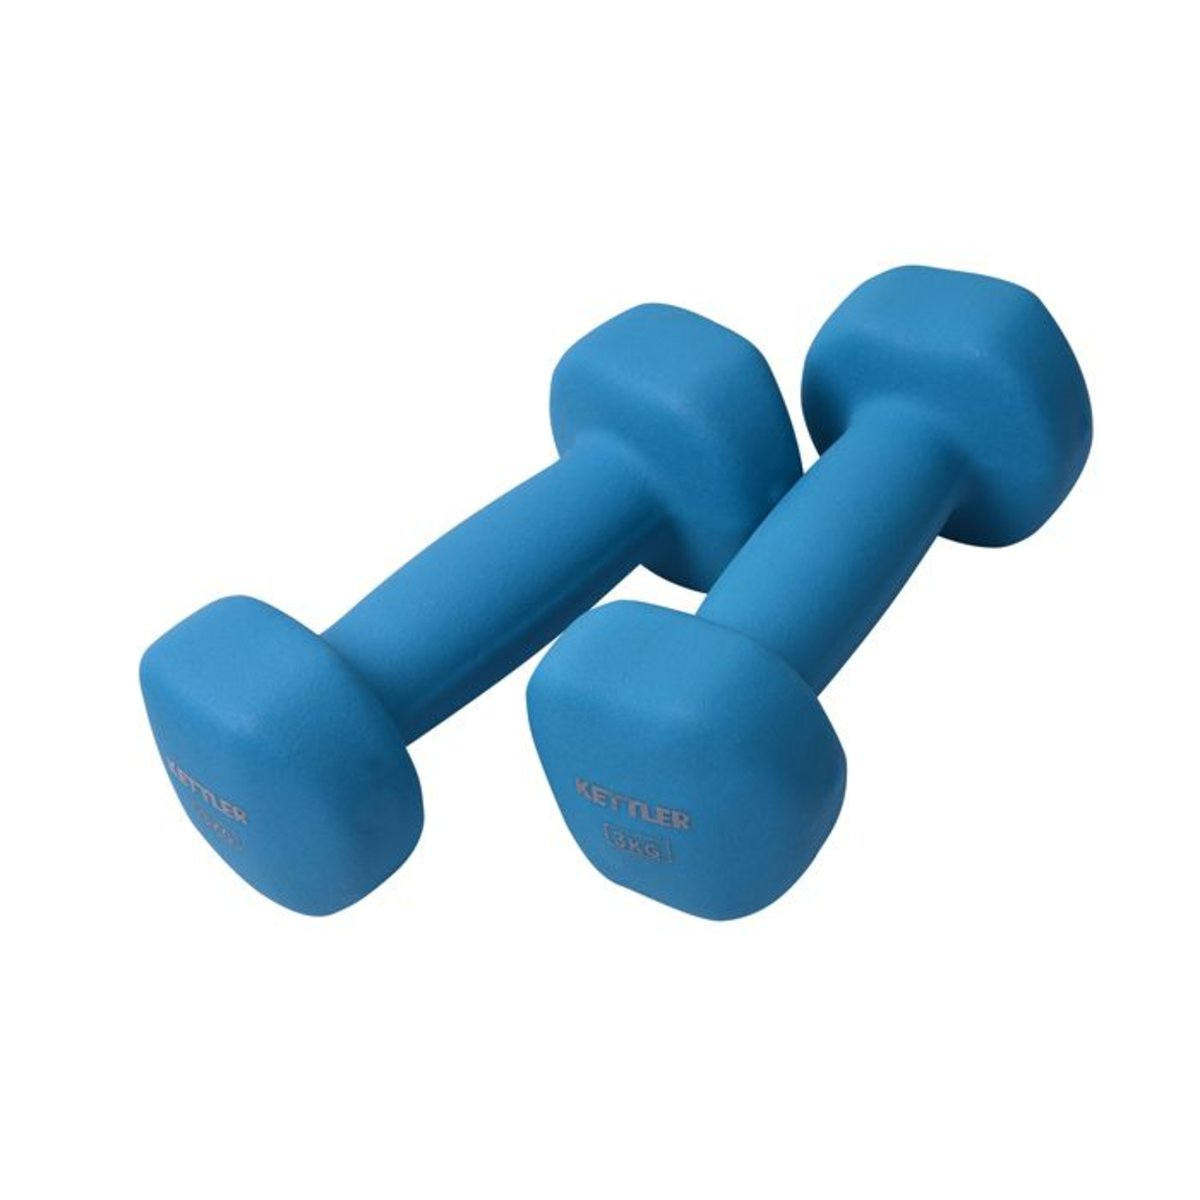 Neoprene Dumbbells 6kg/pair